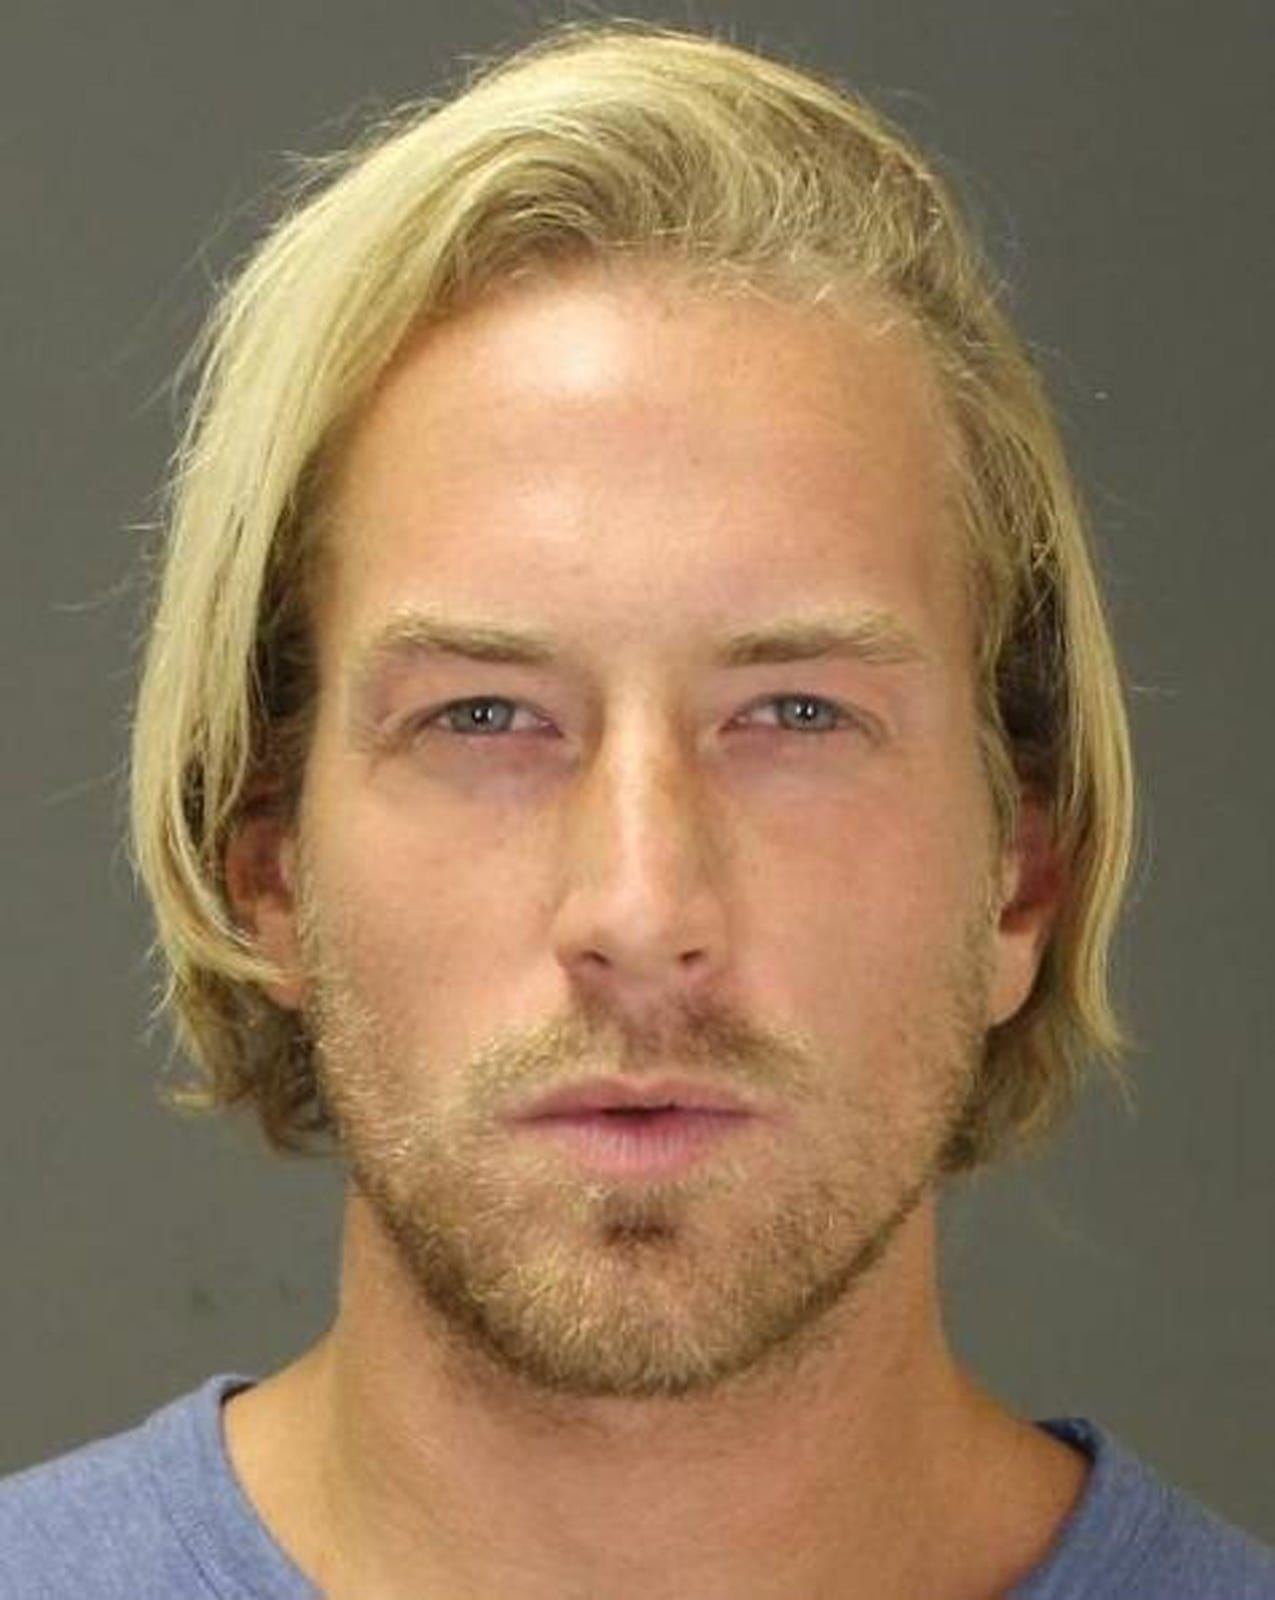 Princeton grad who killed dad after his $1k weekly allowance was cut gets 30 years to life